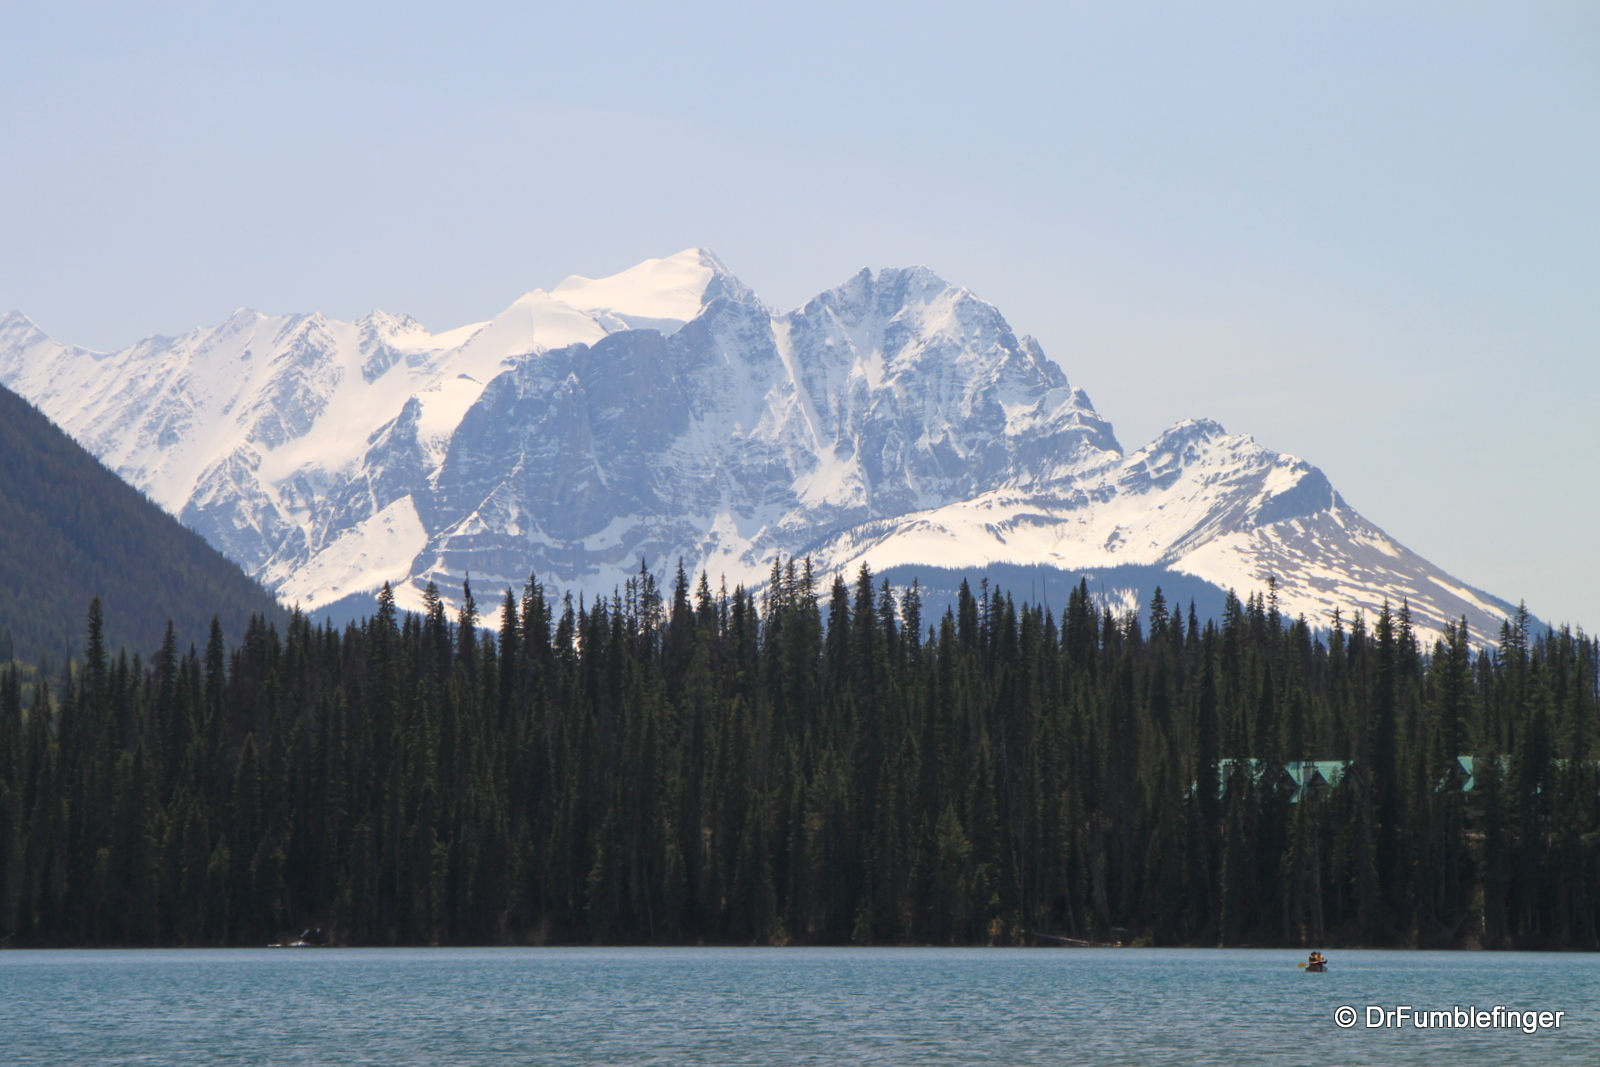 Emerald Lake, view of South Shore